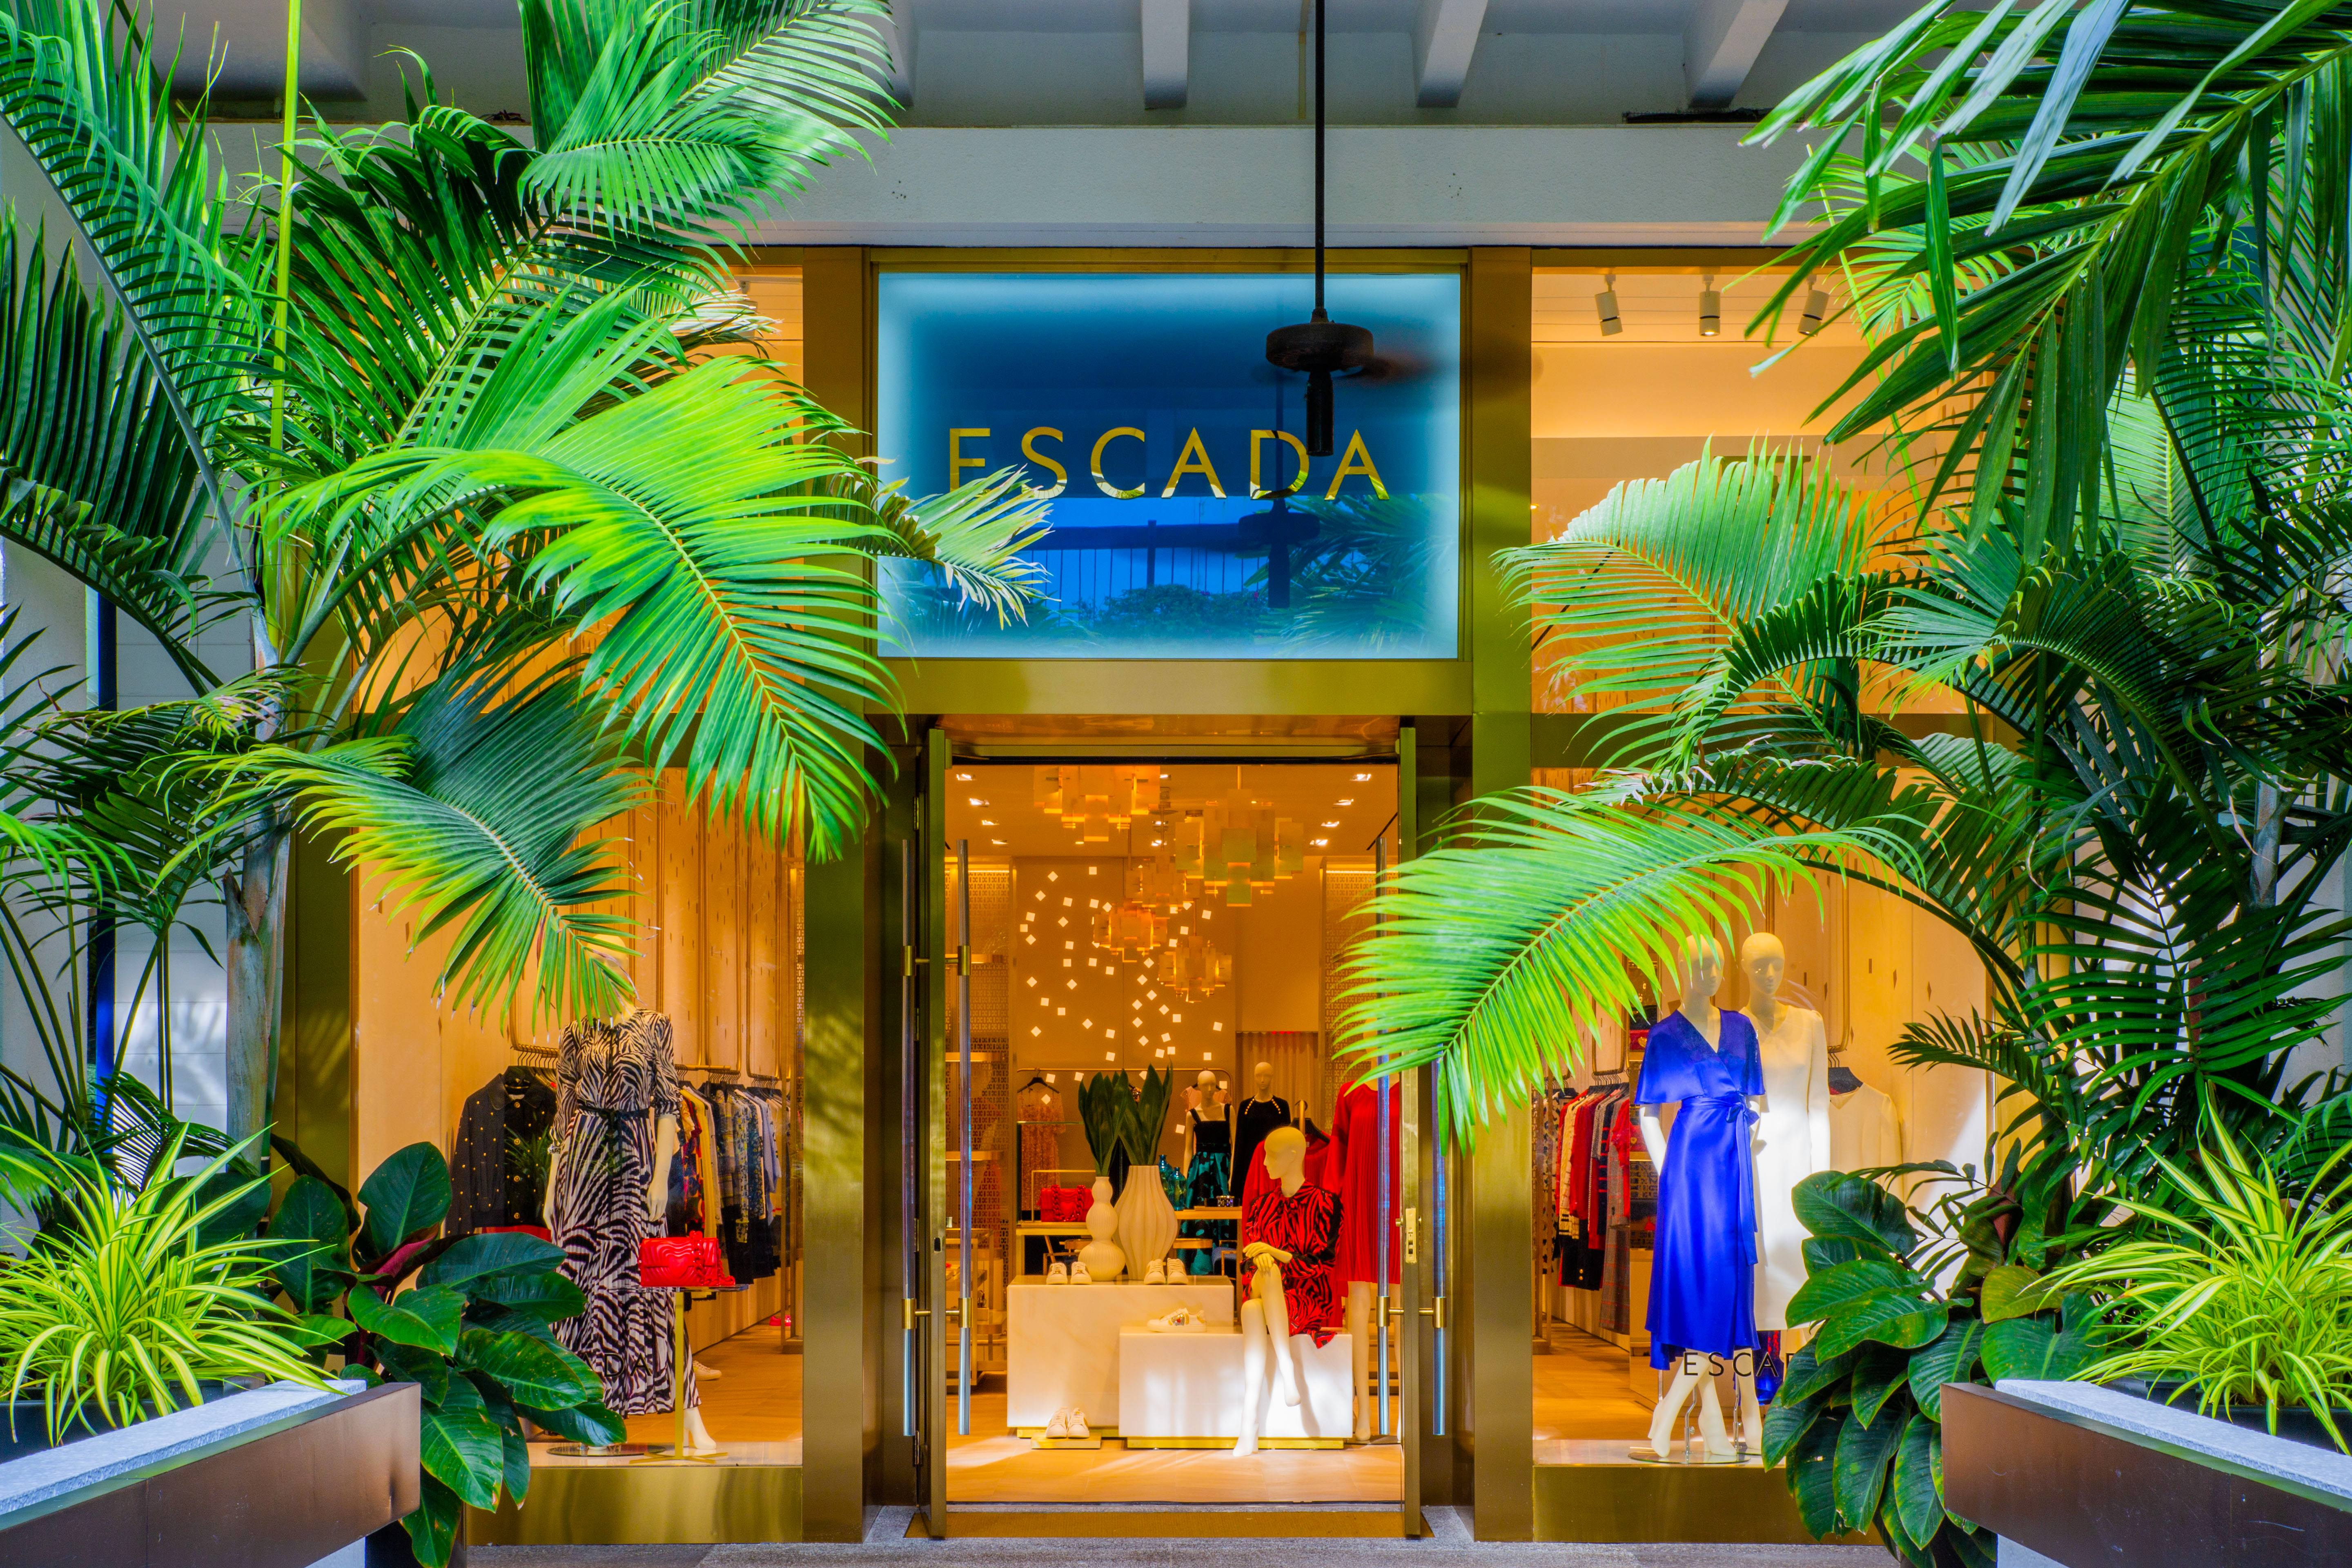 Image 1st ESCADA Concept Store in the U.S. at Bal Harbour Shops